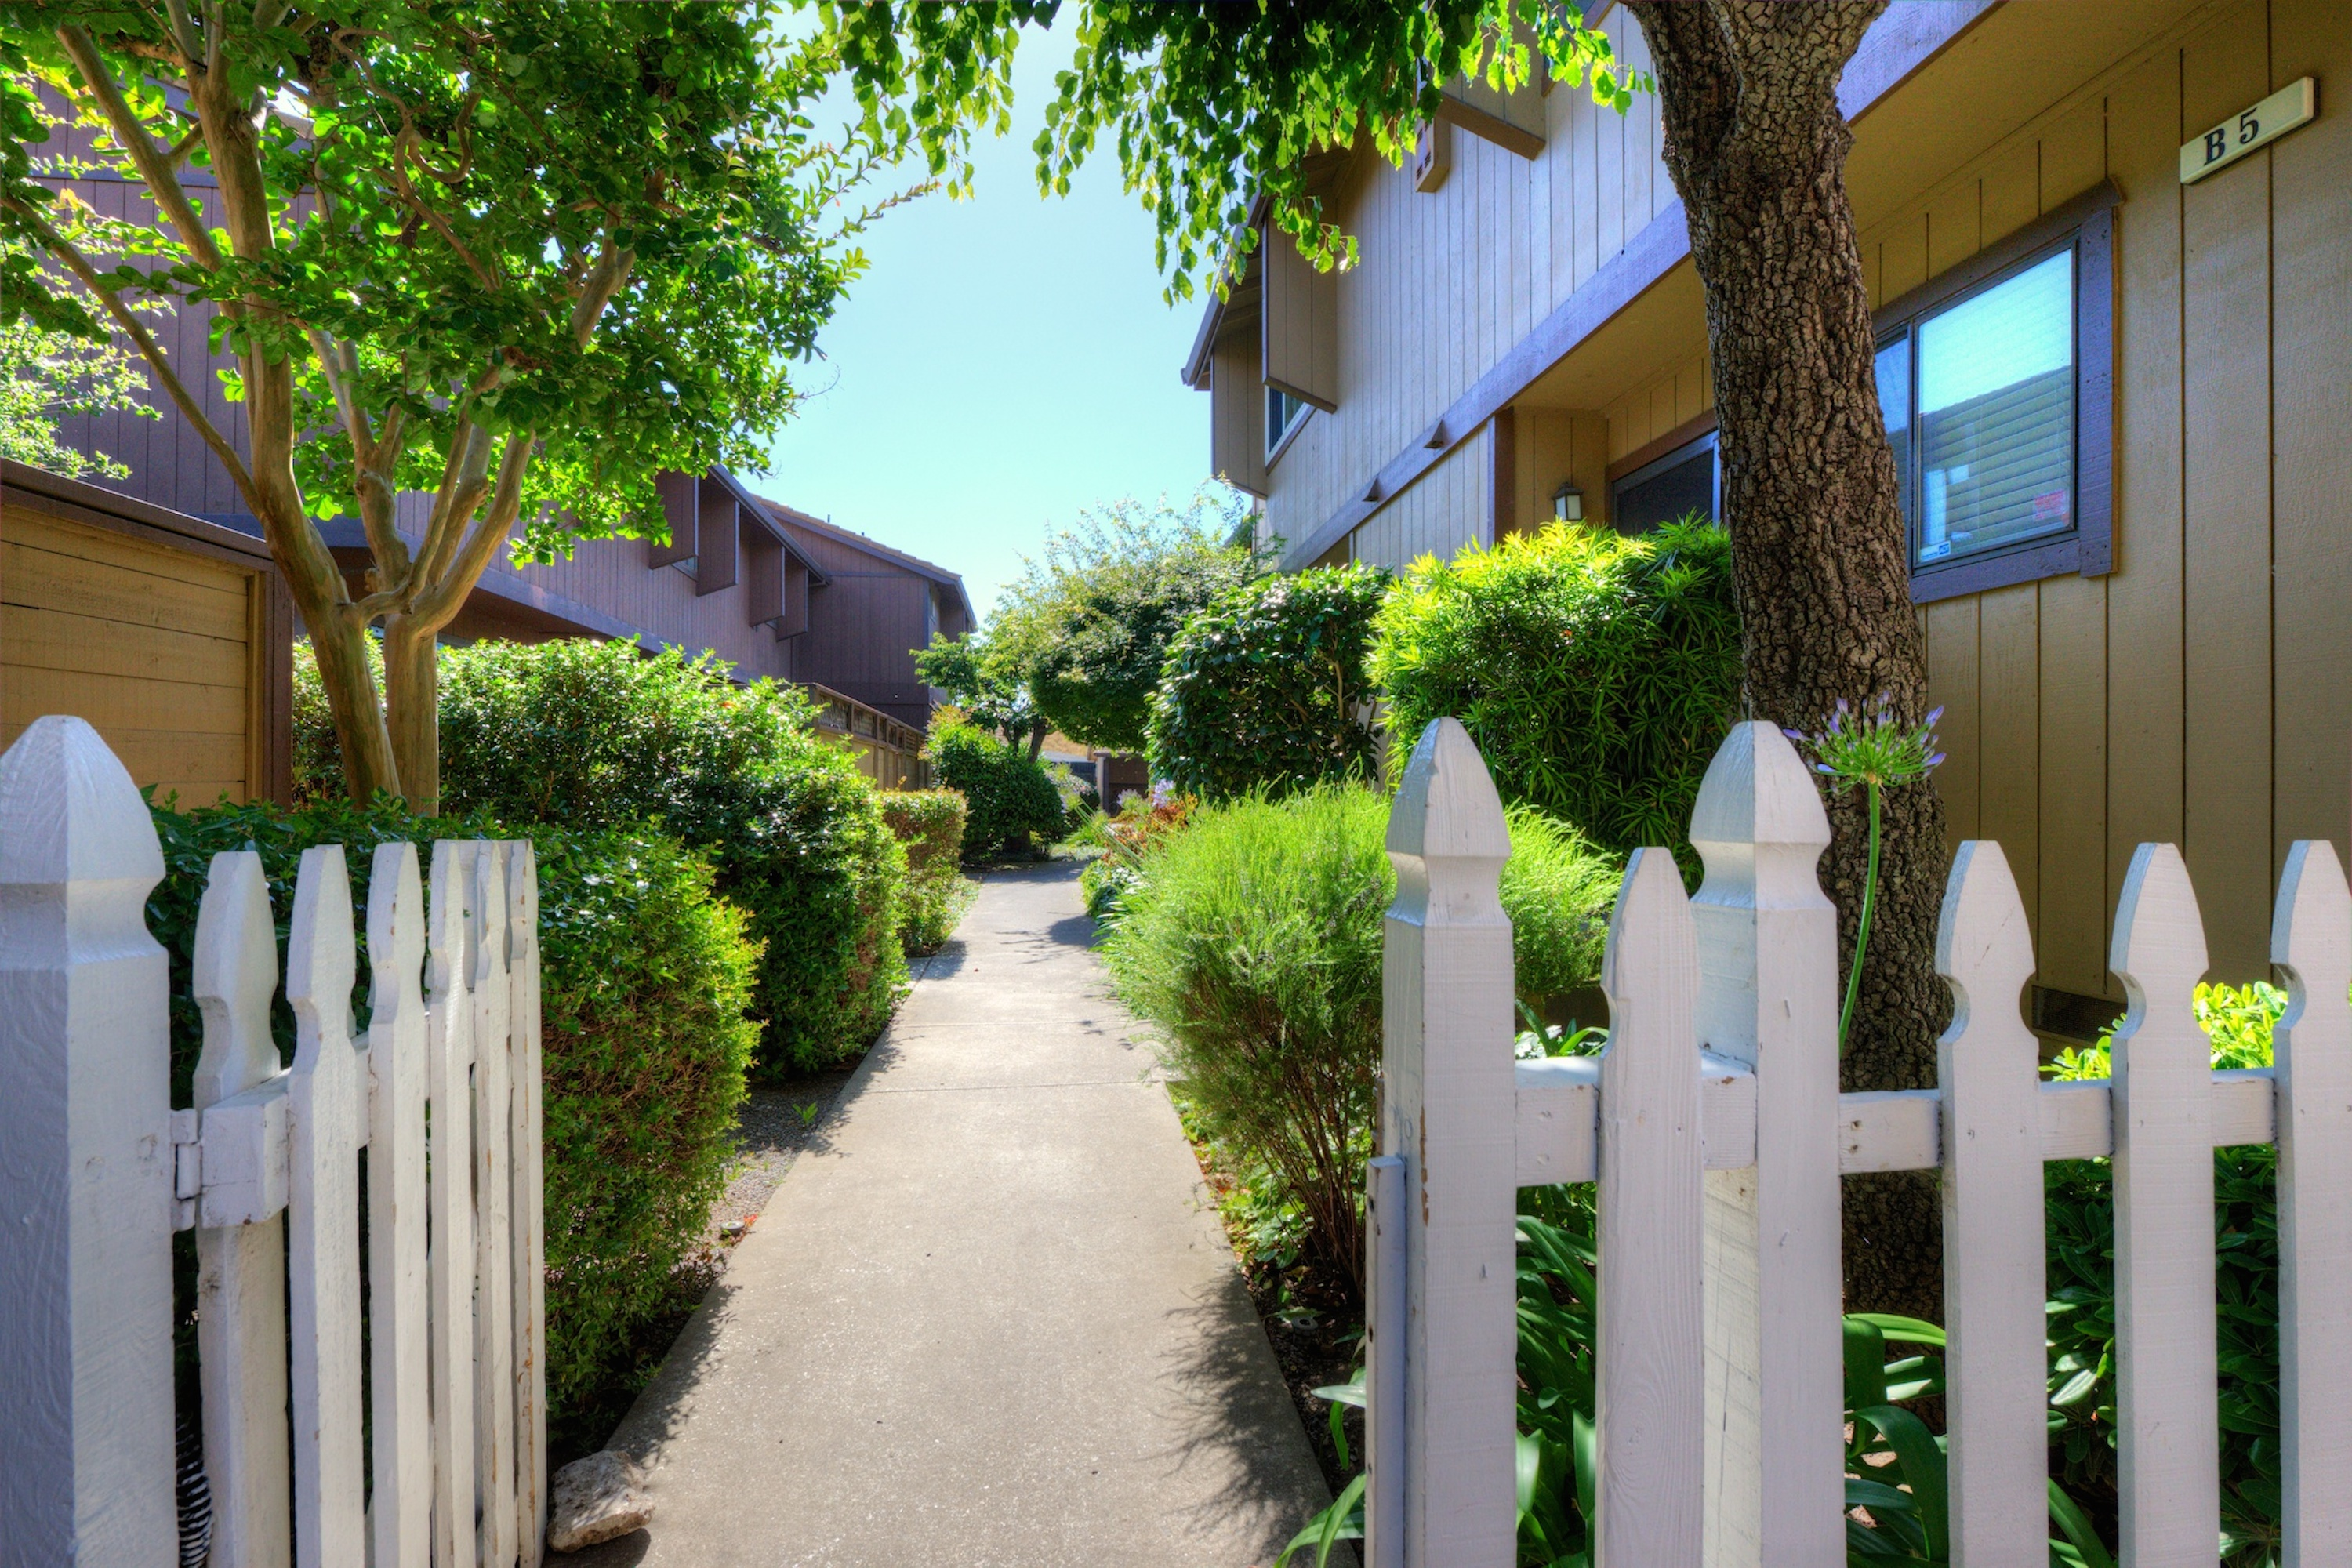 Townhouse for Sale at Updated Townhouse 735 Olive Ave #B4 Novato, California 94945 United States